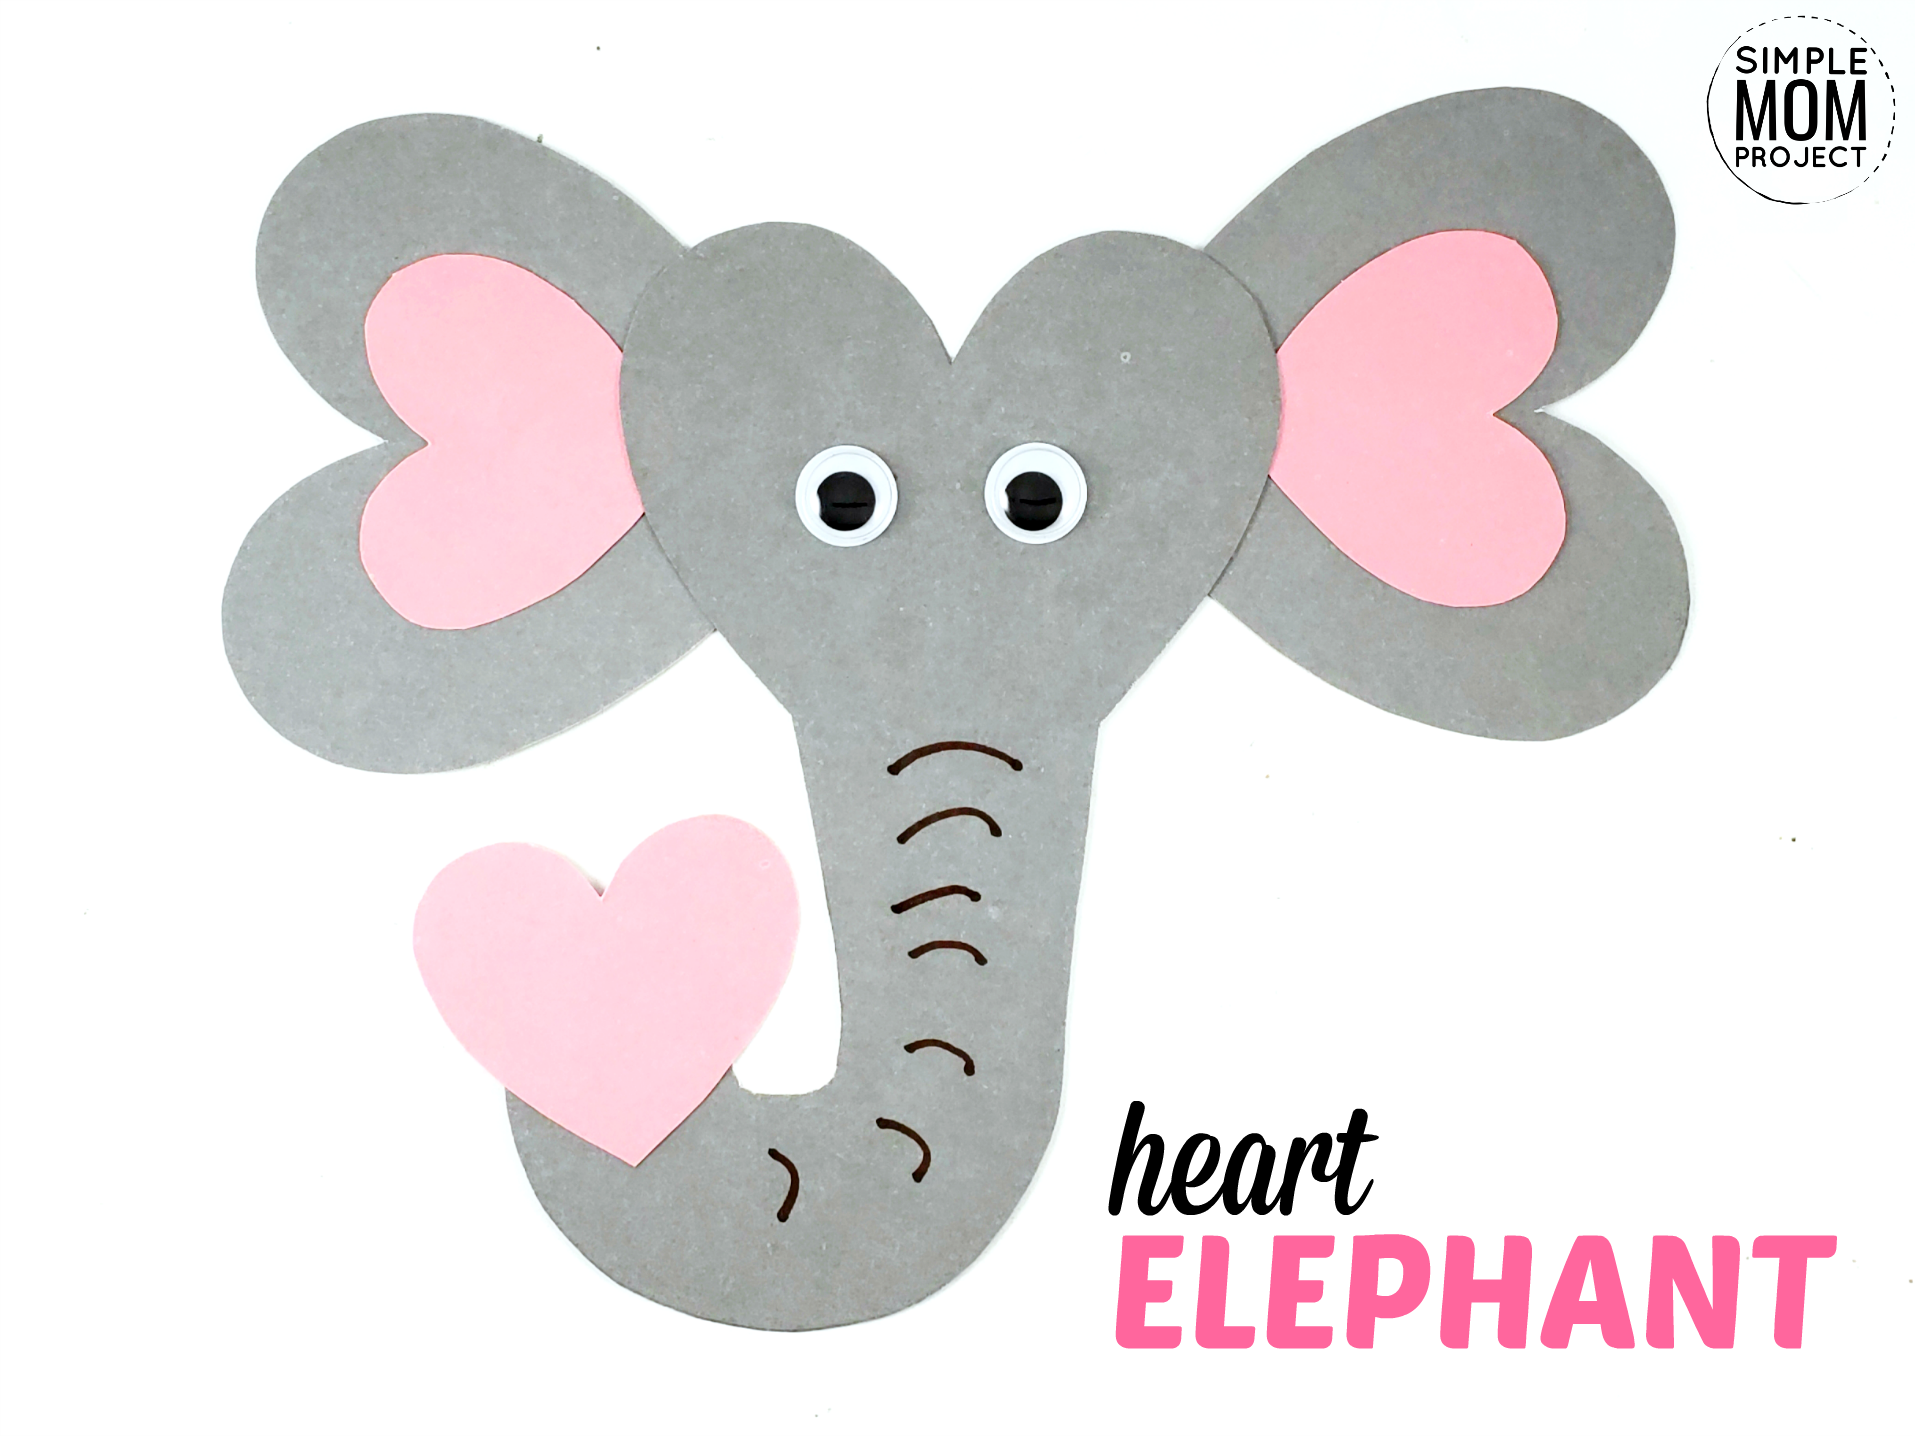 Free printable heart elephant craft template for kids preschoolers toddlers CK